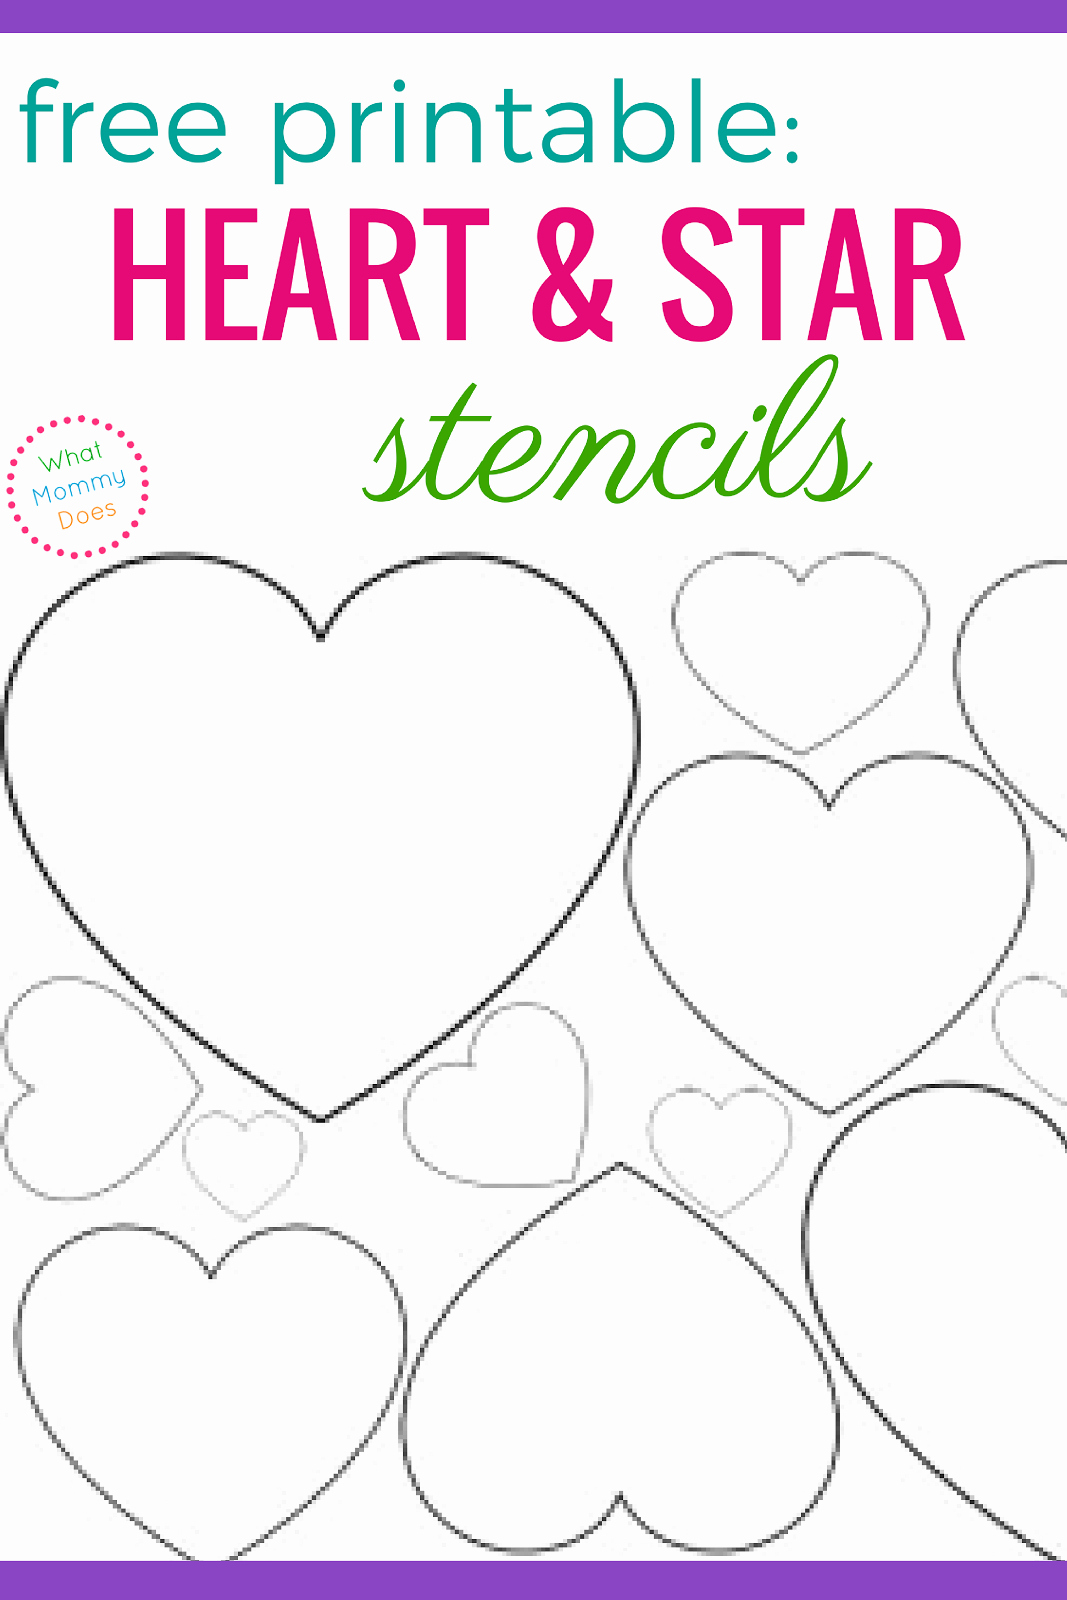 Star Stencil Printable Inspirational Free Printable Heart Stencils & Star Templates